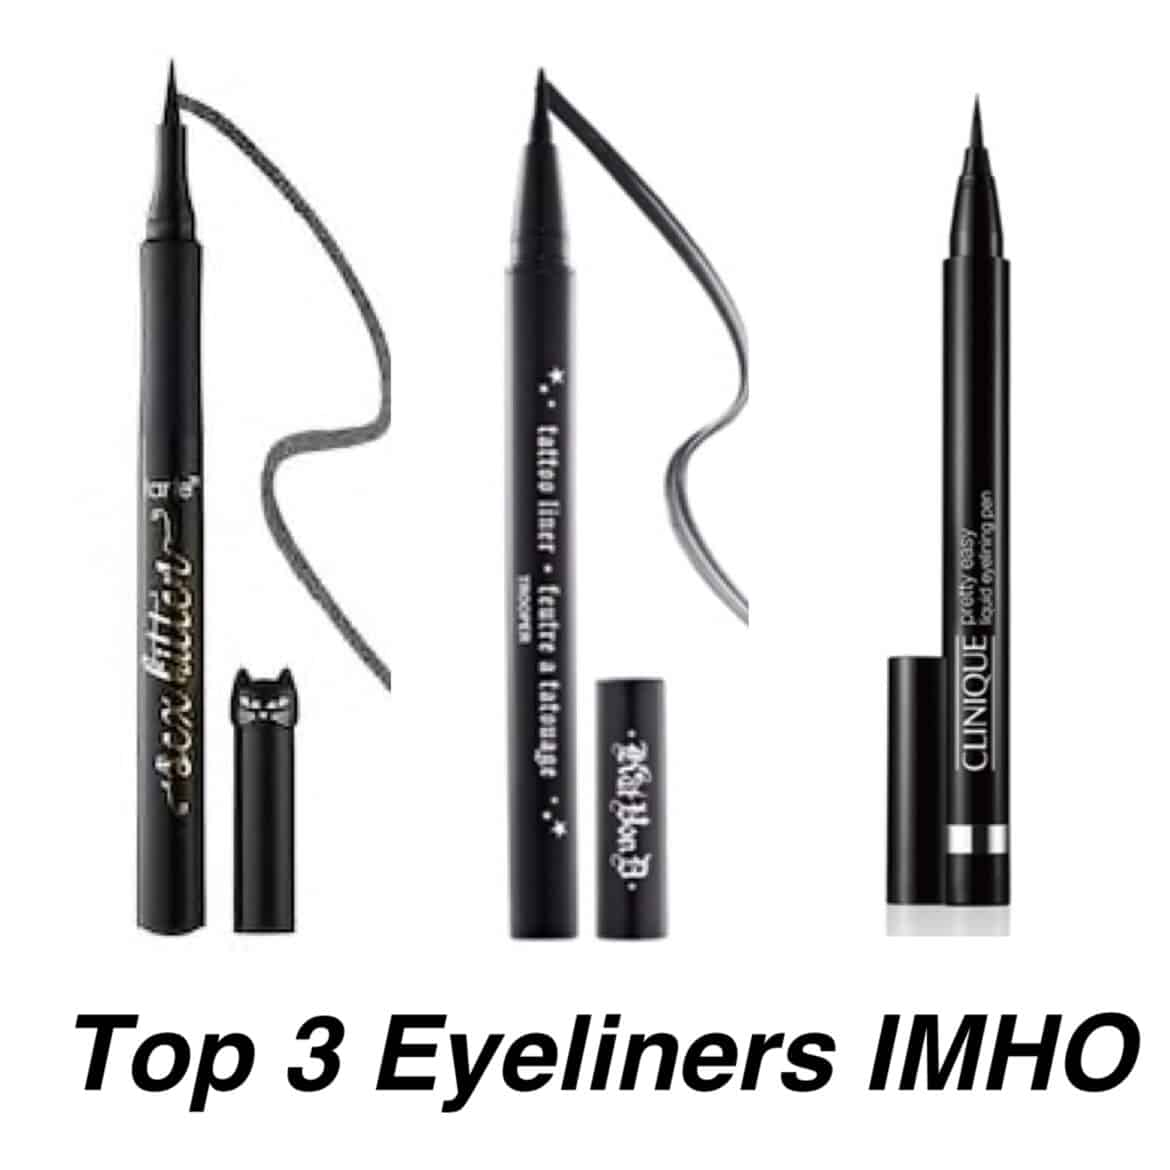 3 best Eyeliners for sensitive eyes